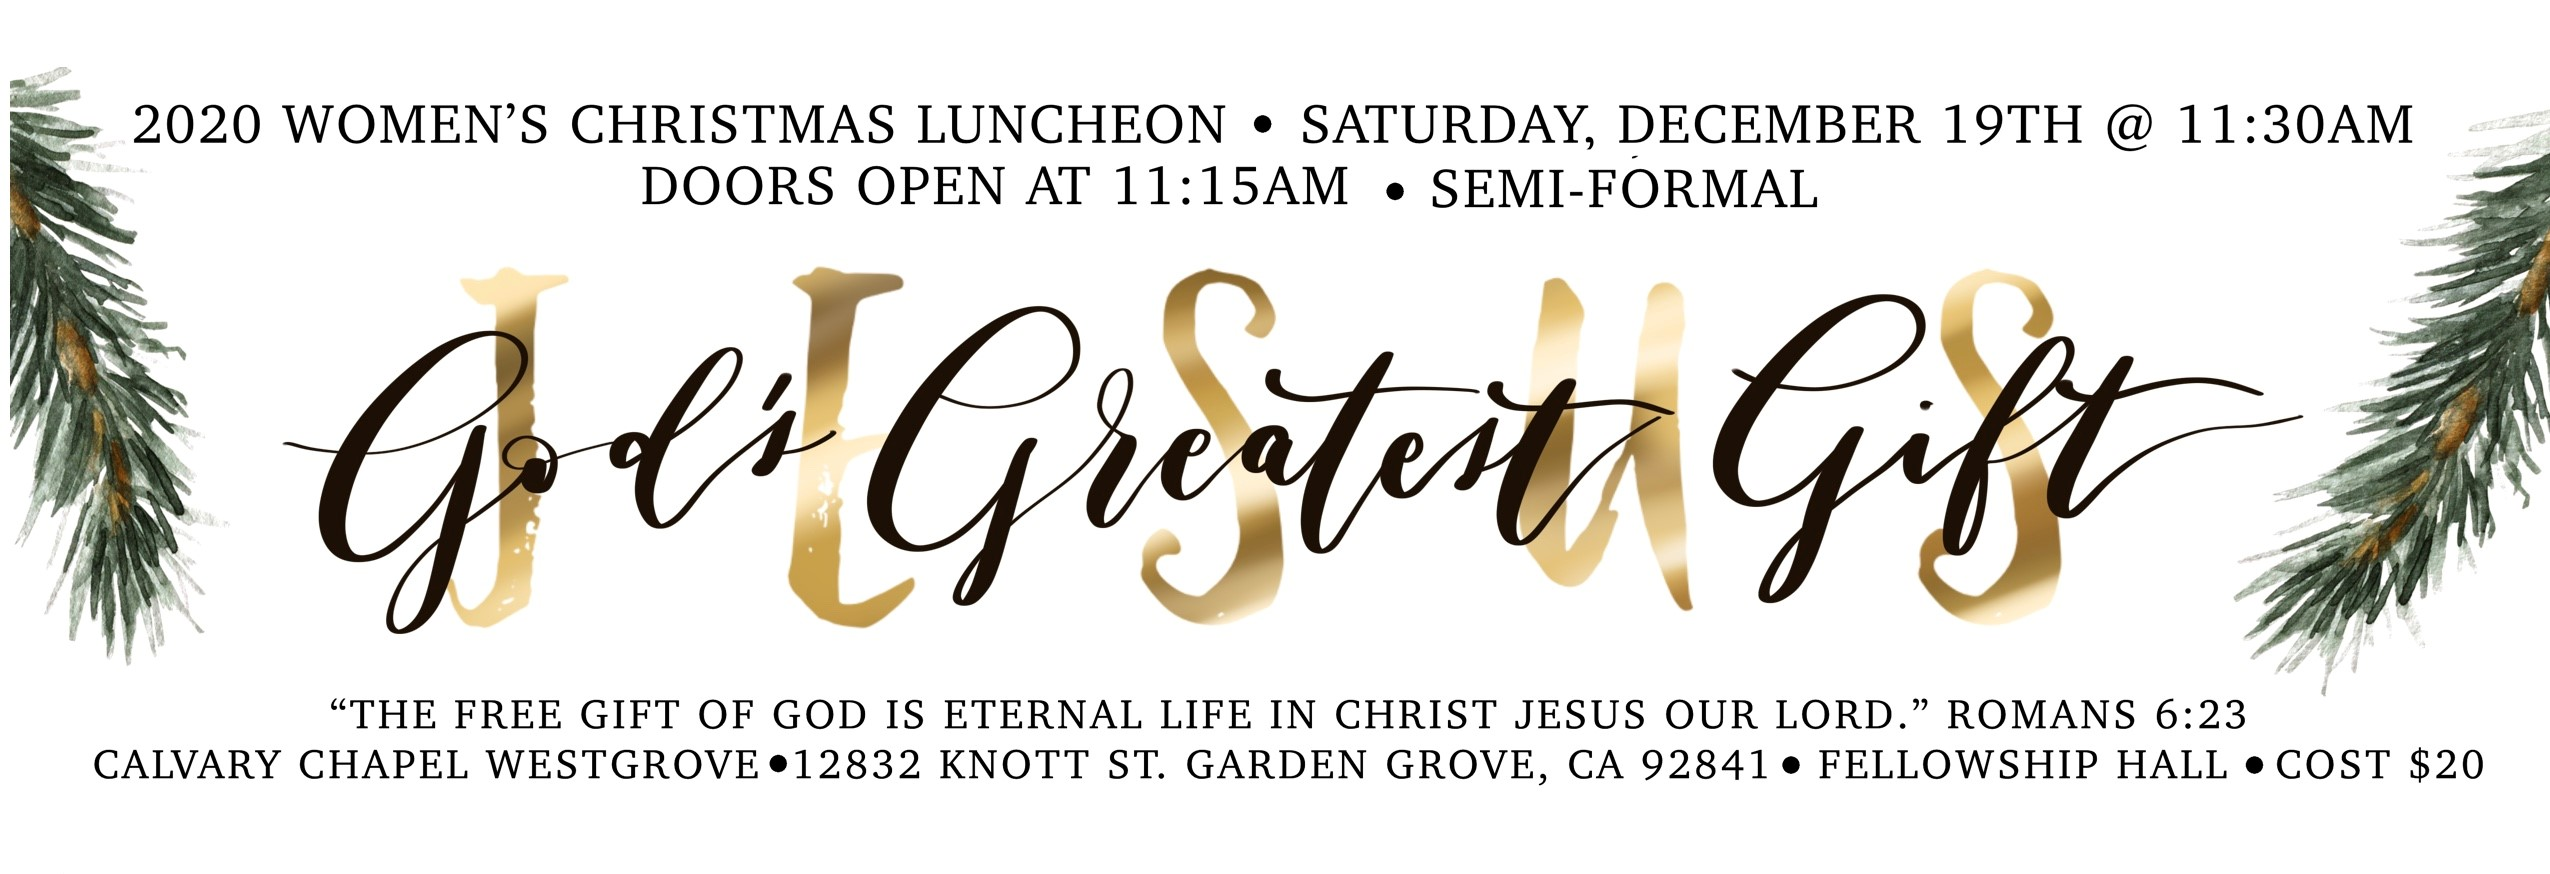 2020 Women's Christmas Luncheon | God's Greatest Gift